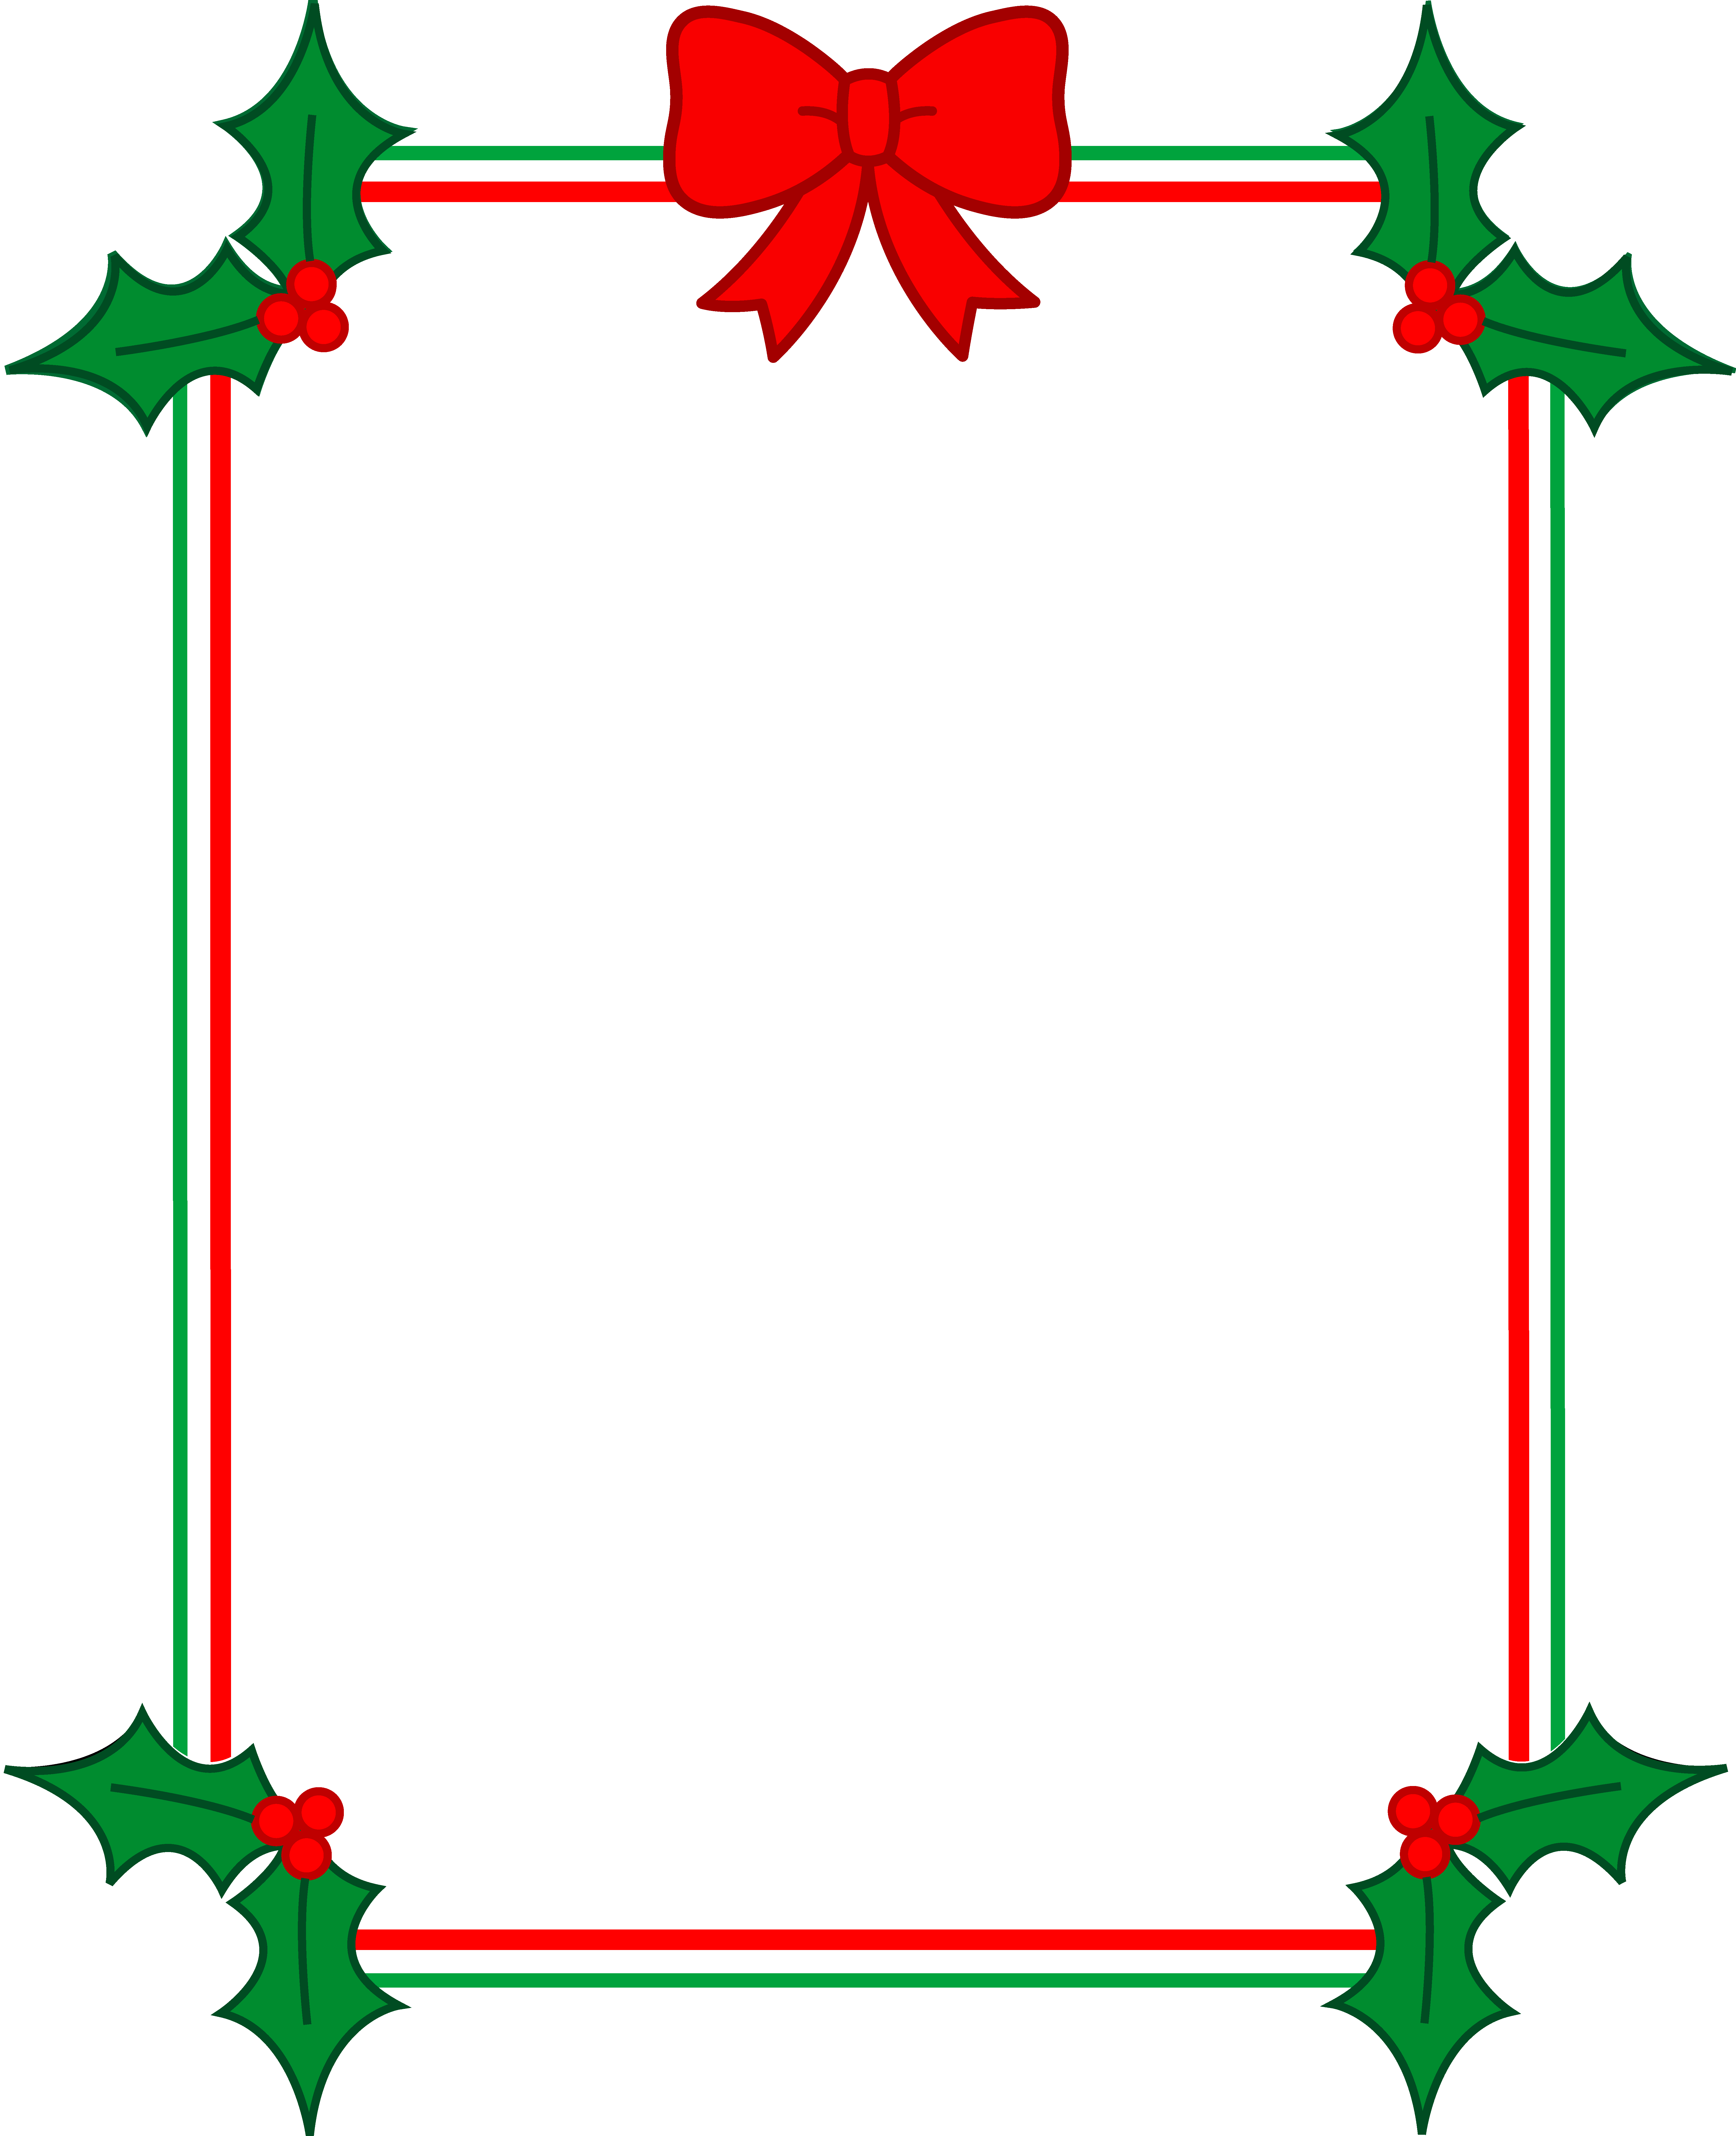 clip royalty free download Free christmas clipart borders. Border with holly and.